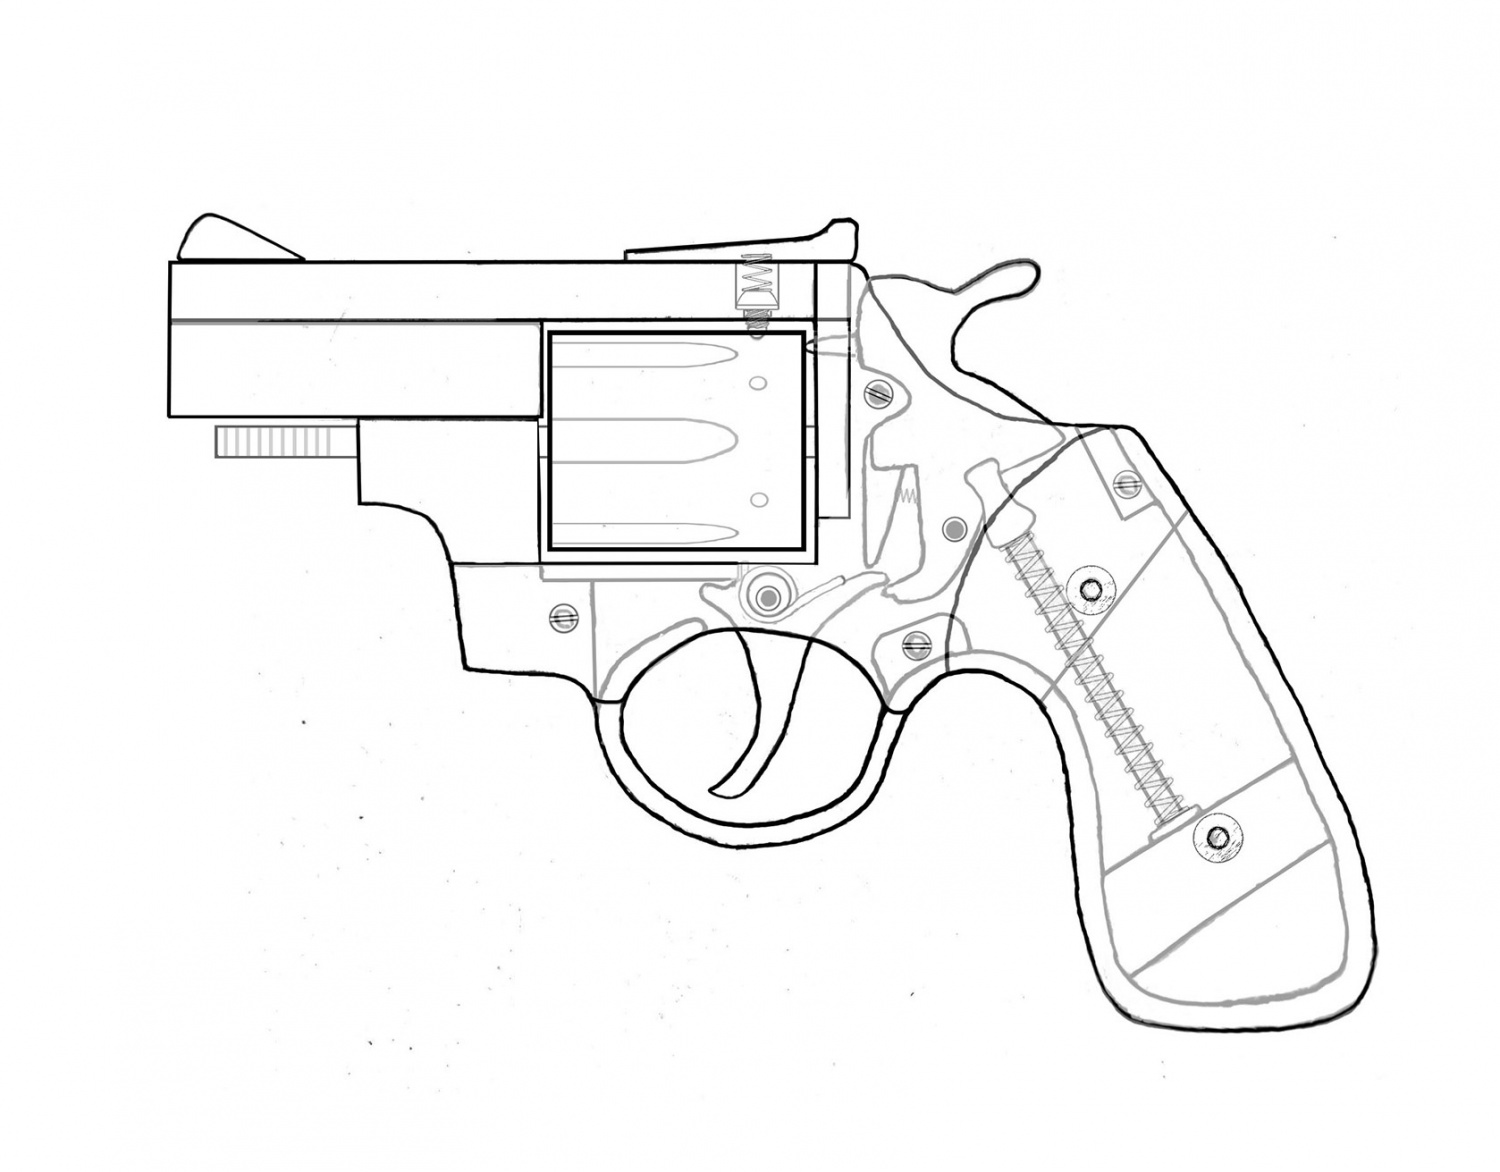 Improvised Homemade 22lr Revolver Project The Firearm Blog